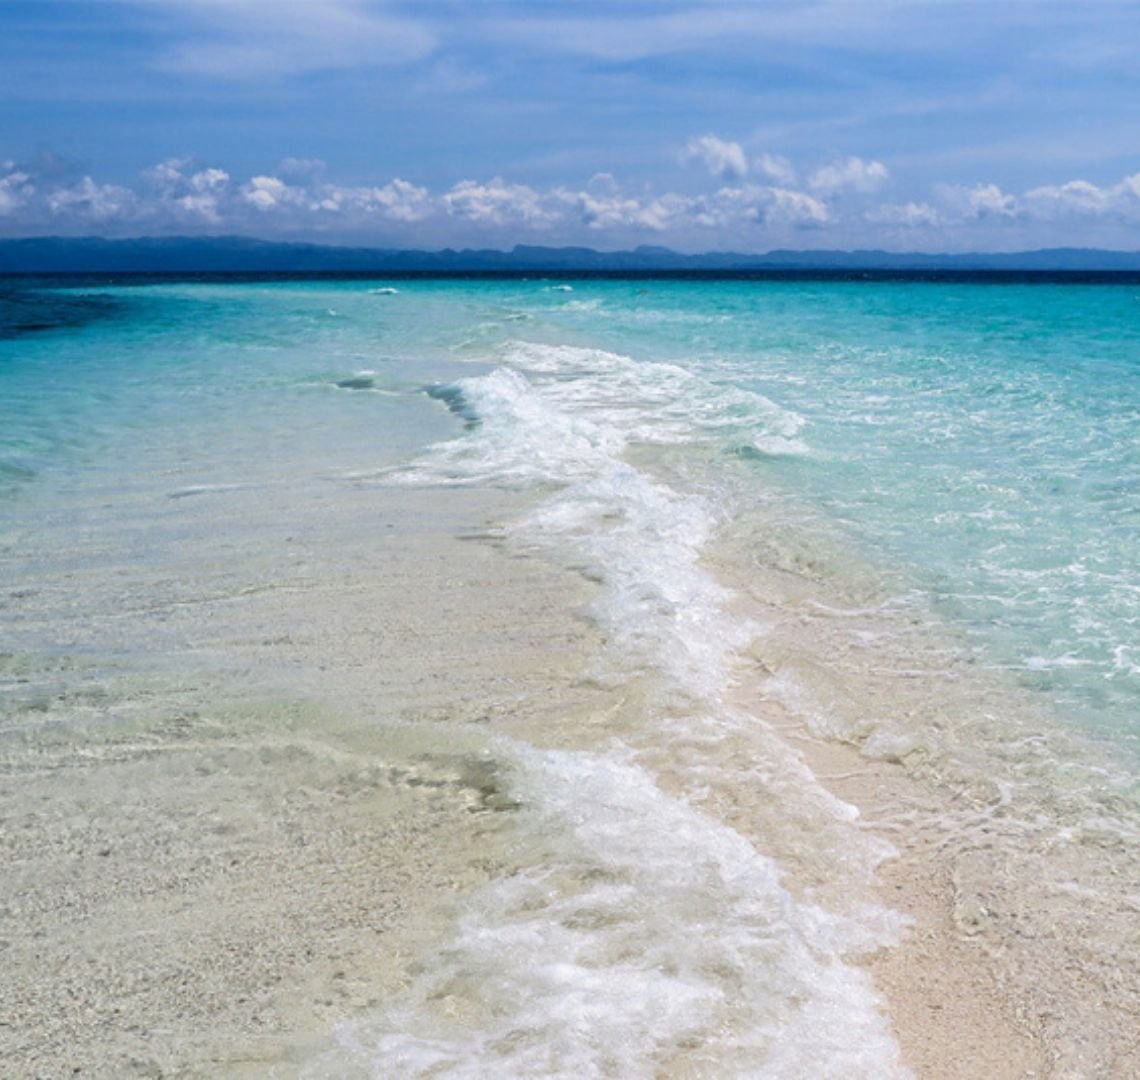 Best Secret Islands in the Philippines - there is perfectly clear, turquoise water on either side of a white sandbar. There are frothy waves in teh middle. To the very edges of the image and in the distance, the sea turns a rich deep blue.